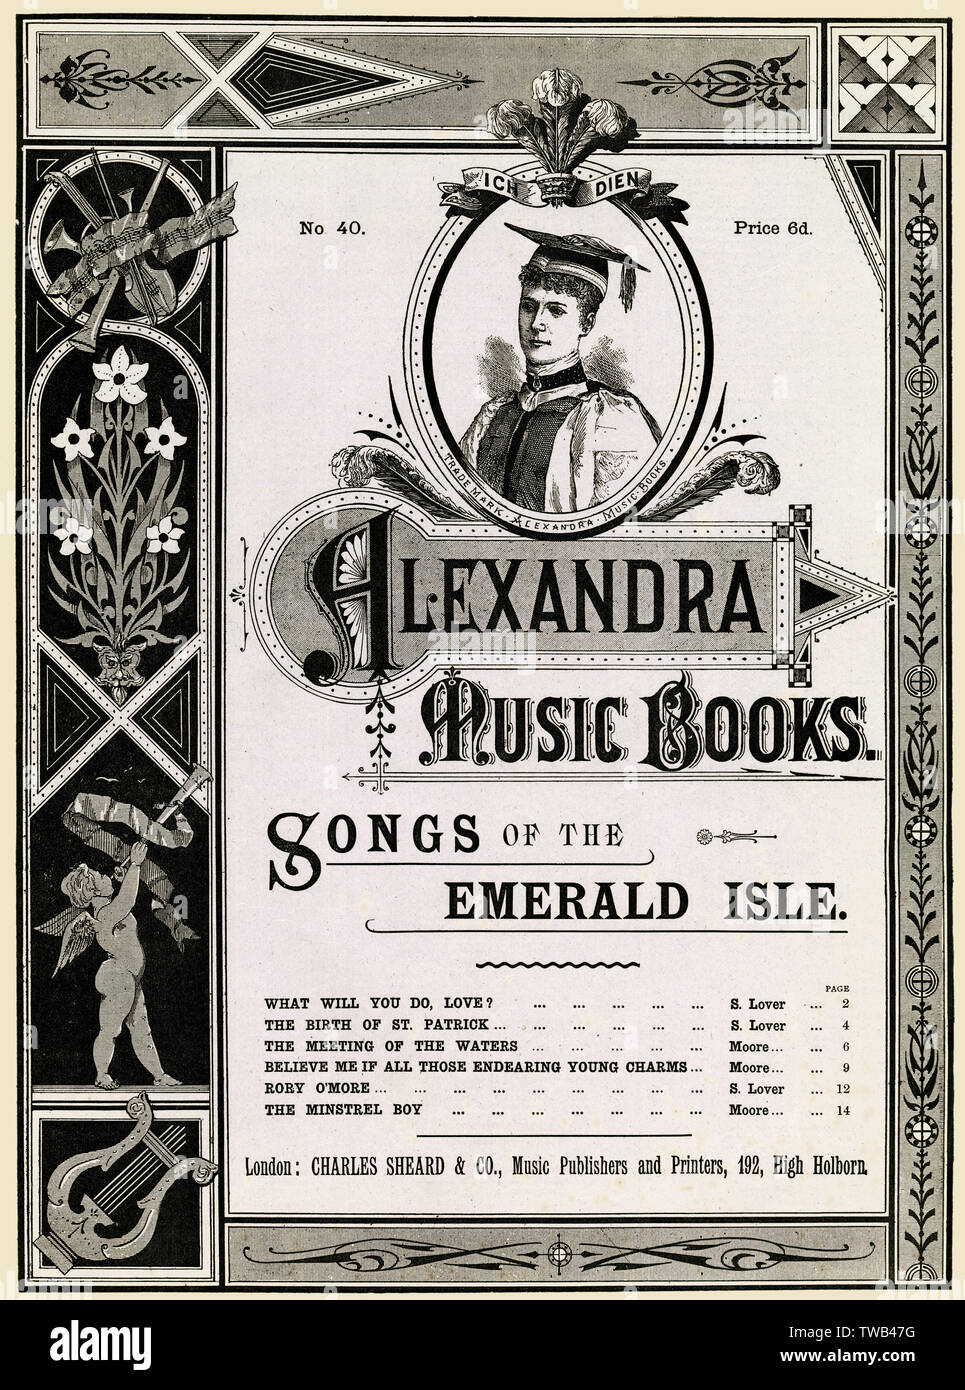 Music cover, Alexandra Music Books, Songs of the Emerald Isle. With a portrait of Princess Alexandra of Wales when she received the honorary degree of Doctor of Music (DMus) at Trinity College, Dublin, in 1885.      Date: late 19th century - Stock Image